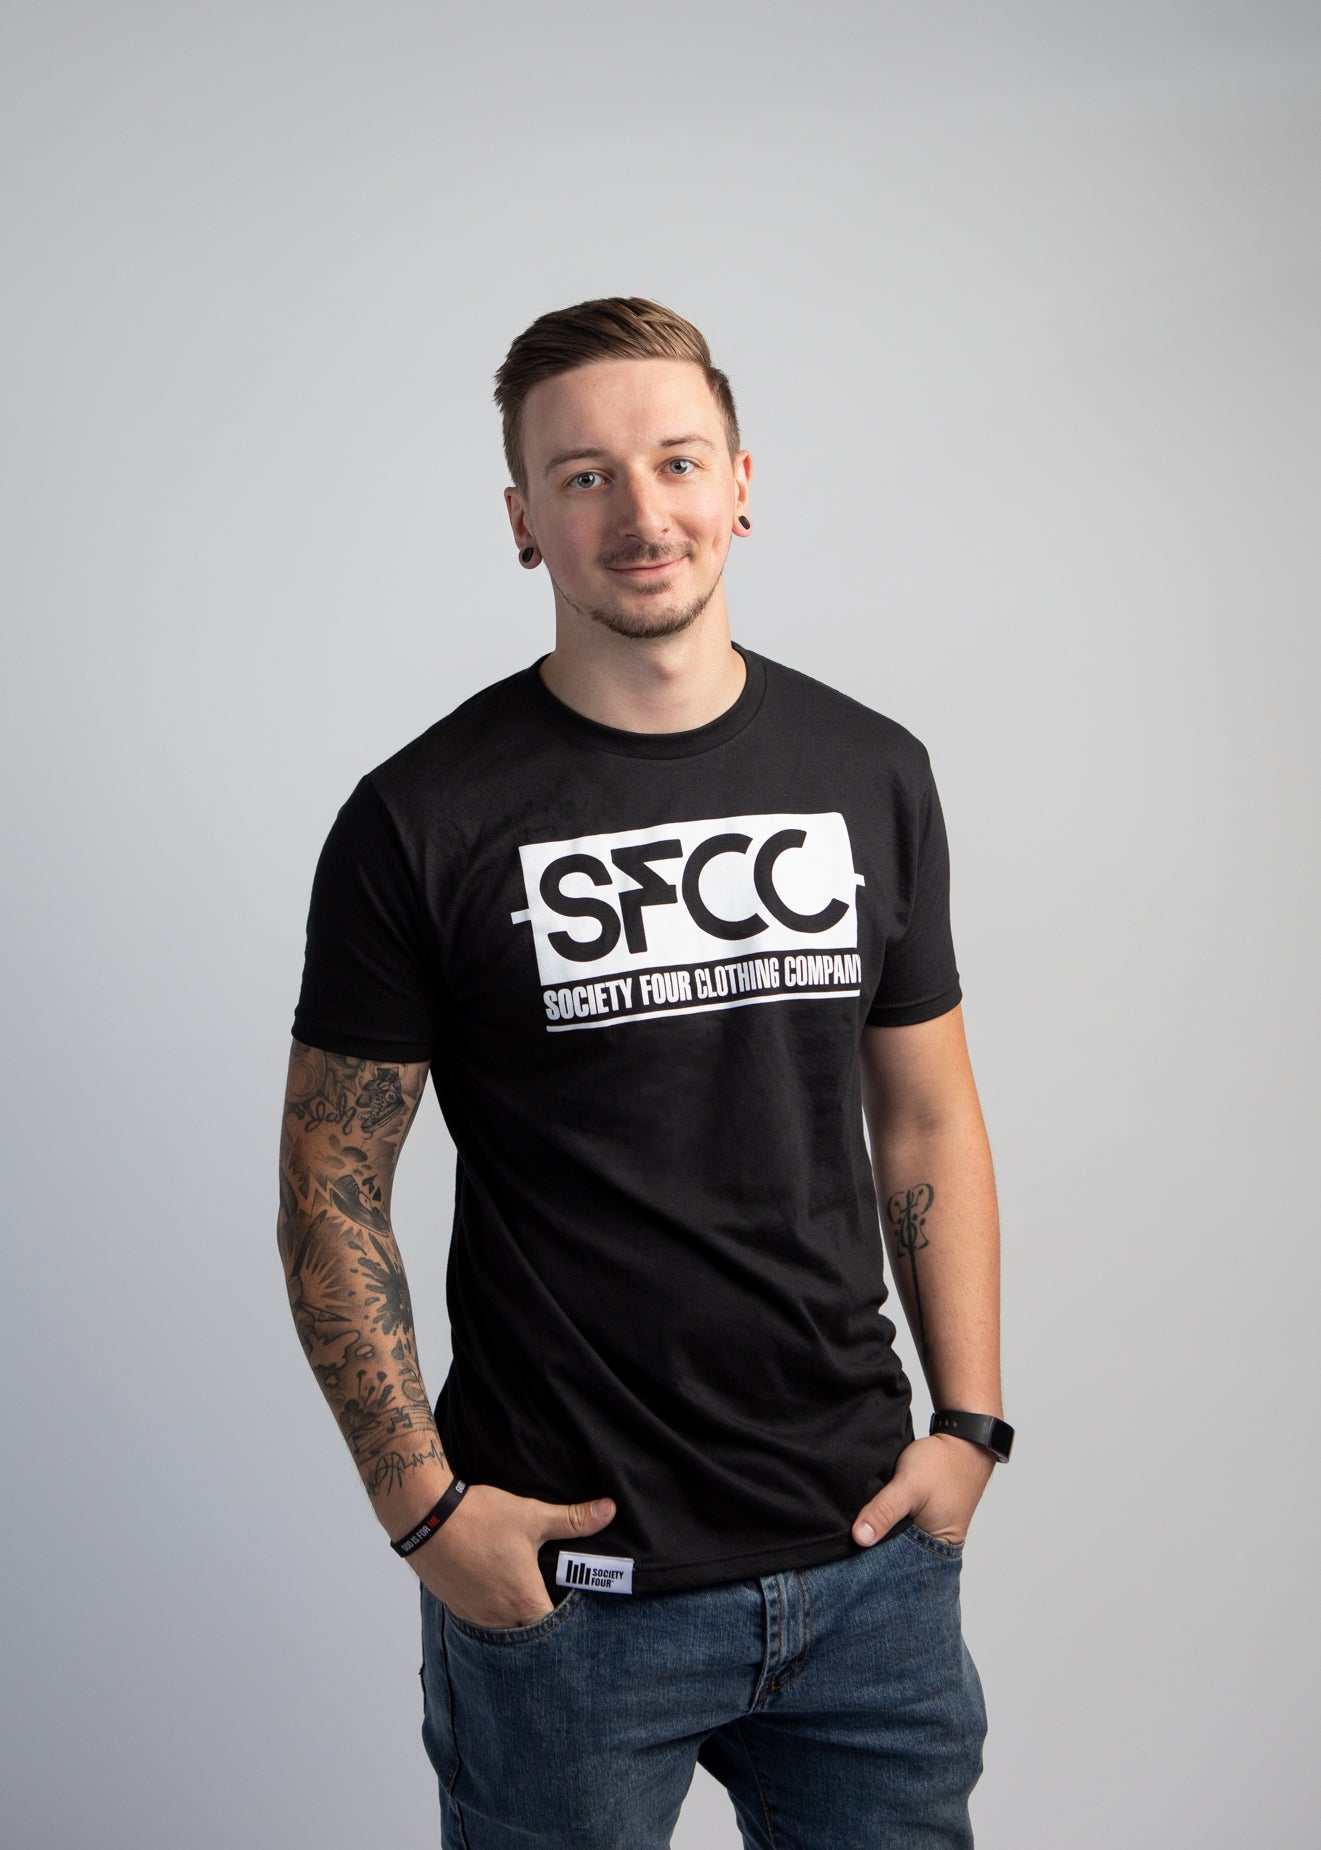 Men's Tee - SFCC Logo - Black